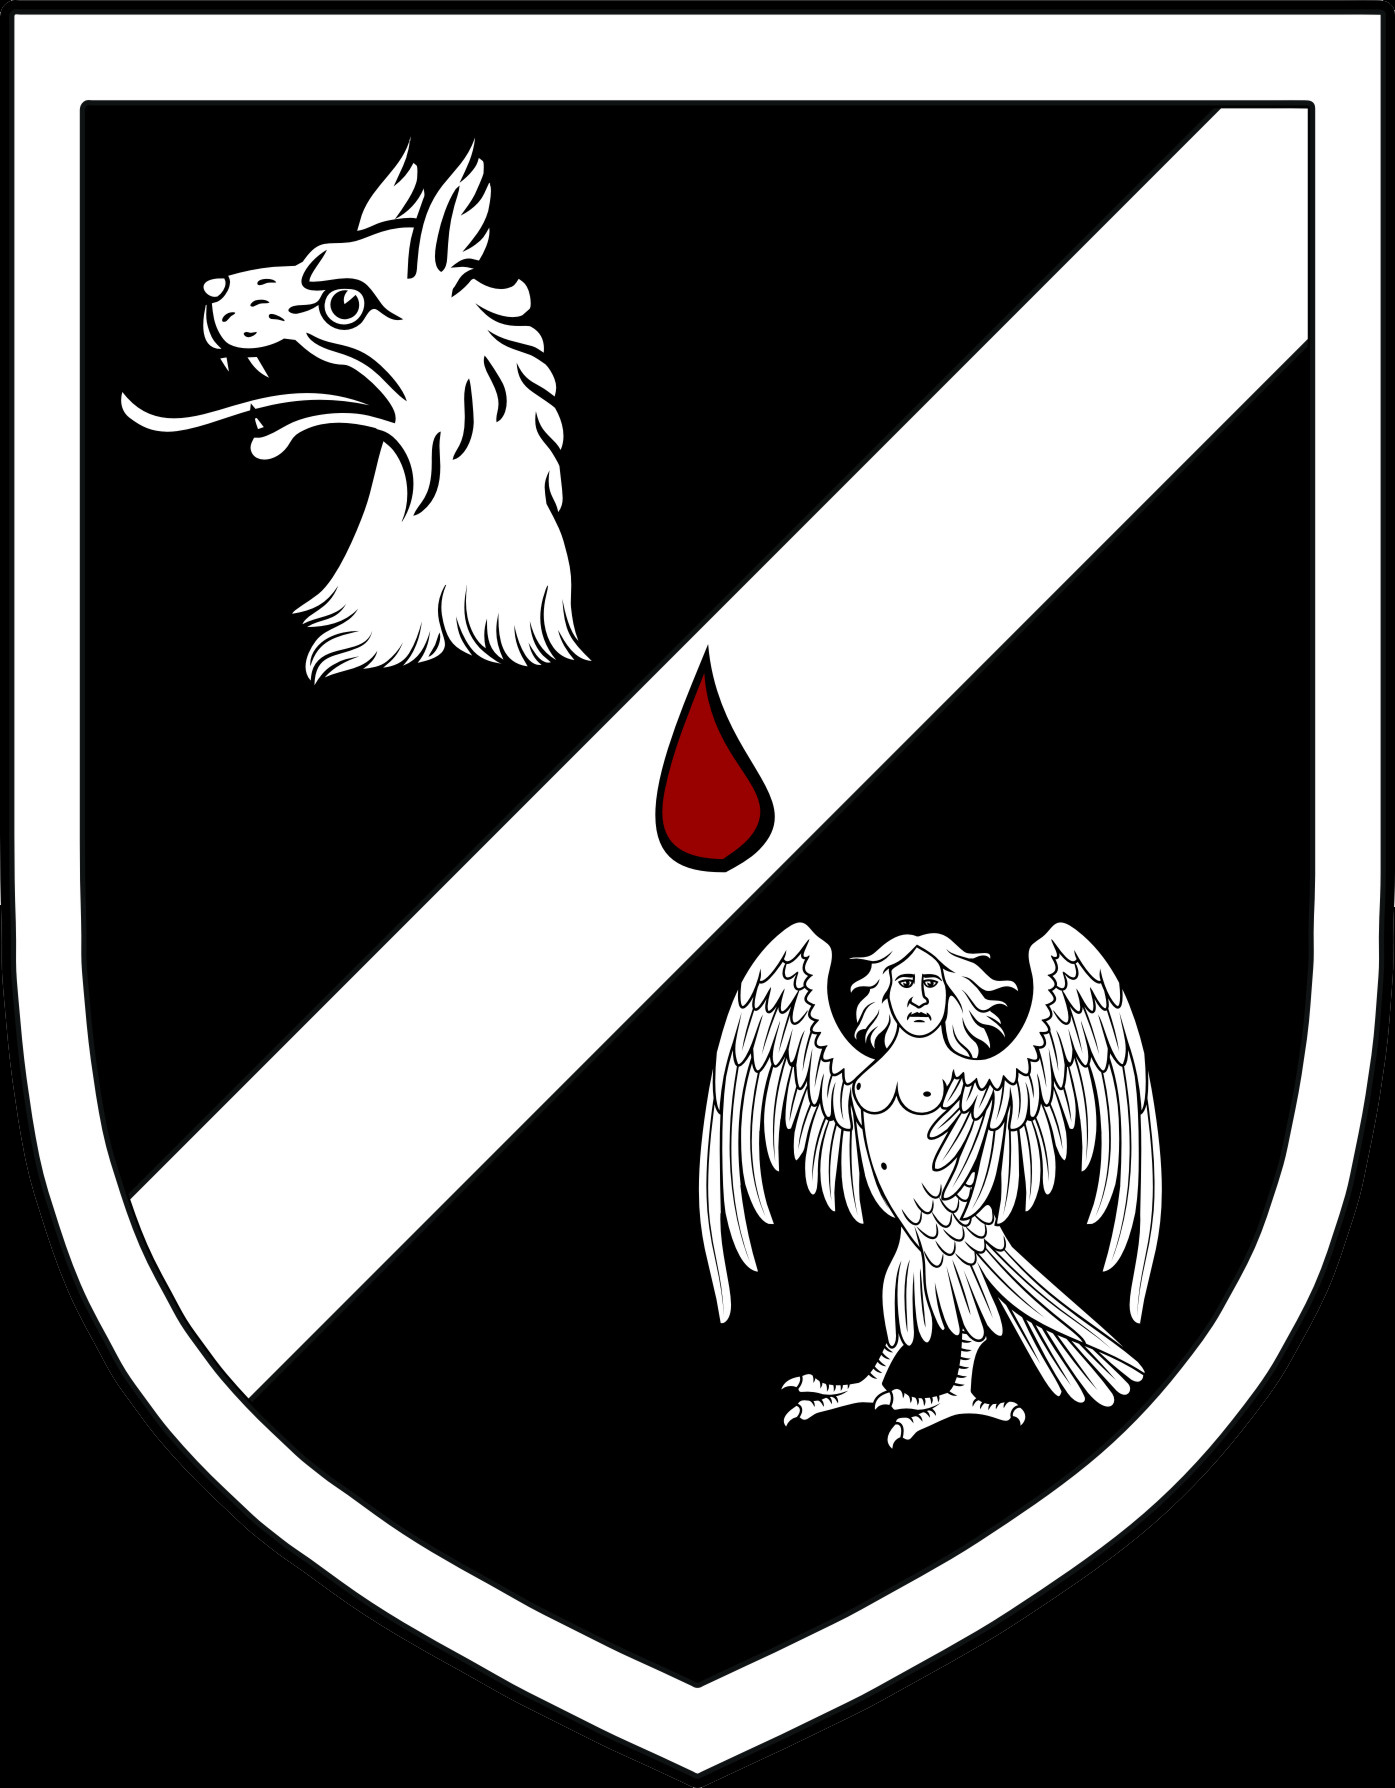 Coat of Arms of Coven of Celsus Trilogy